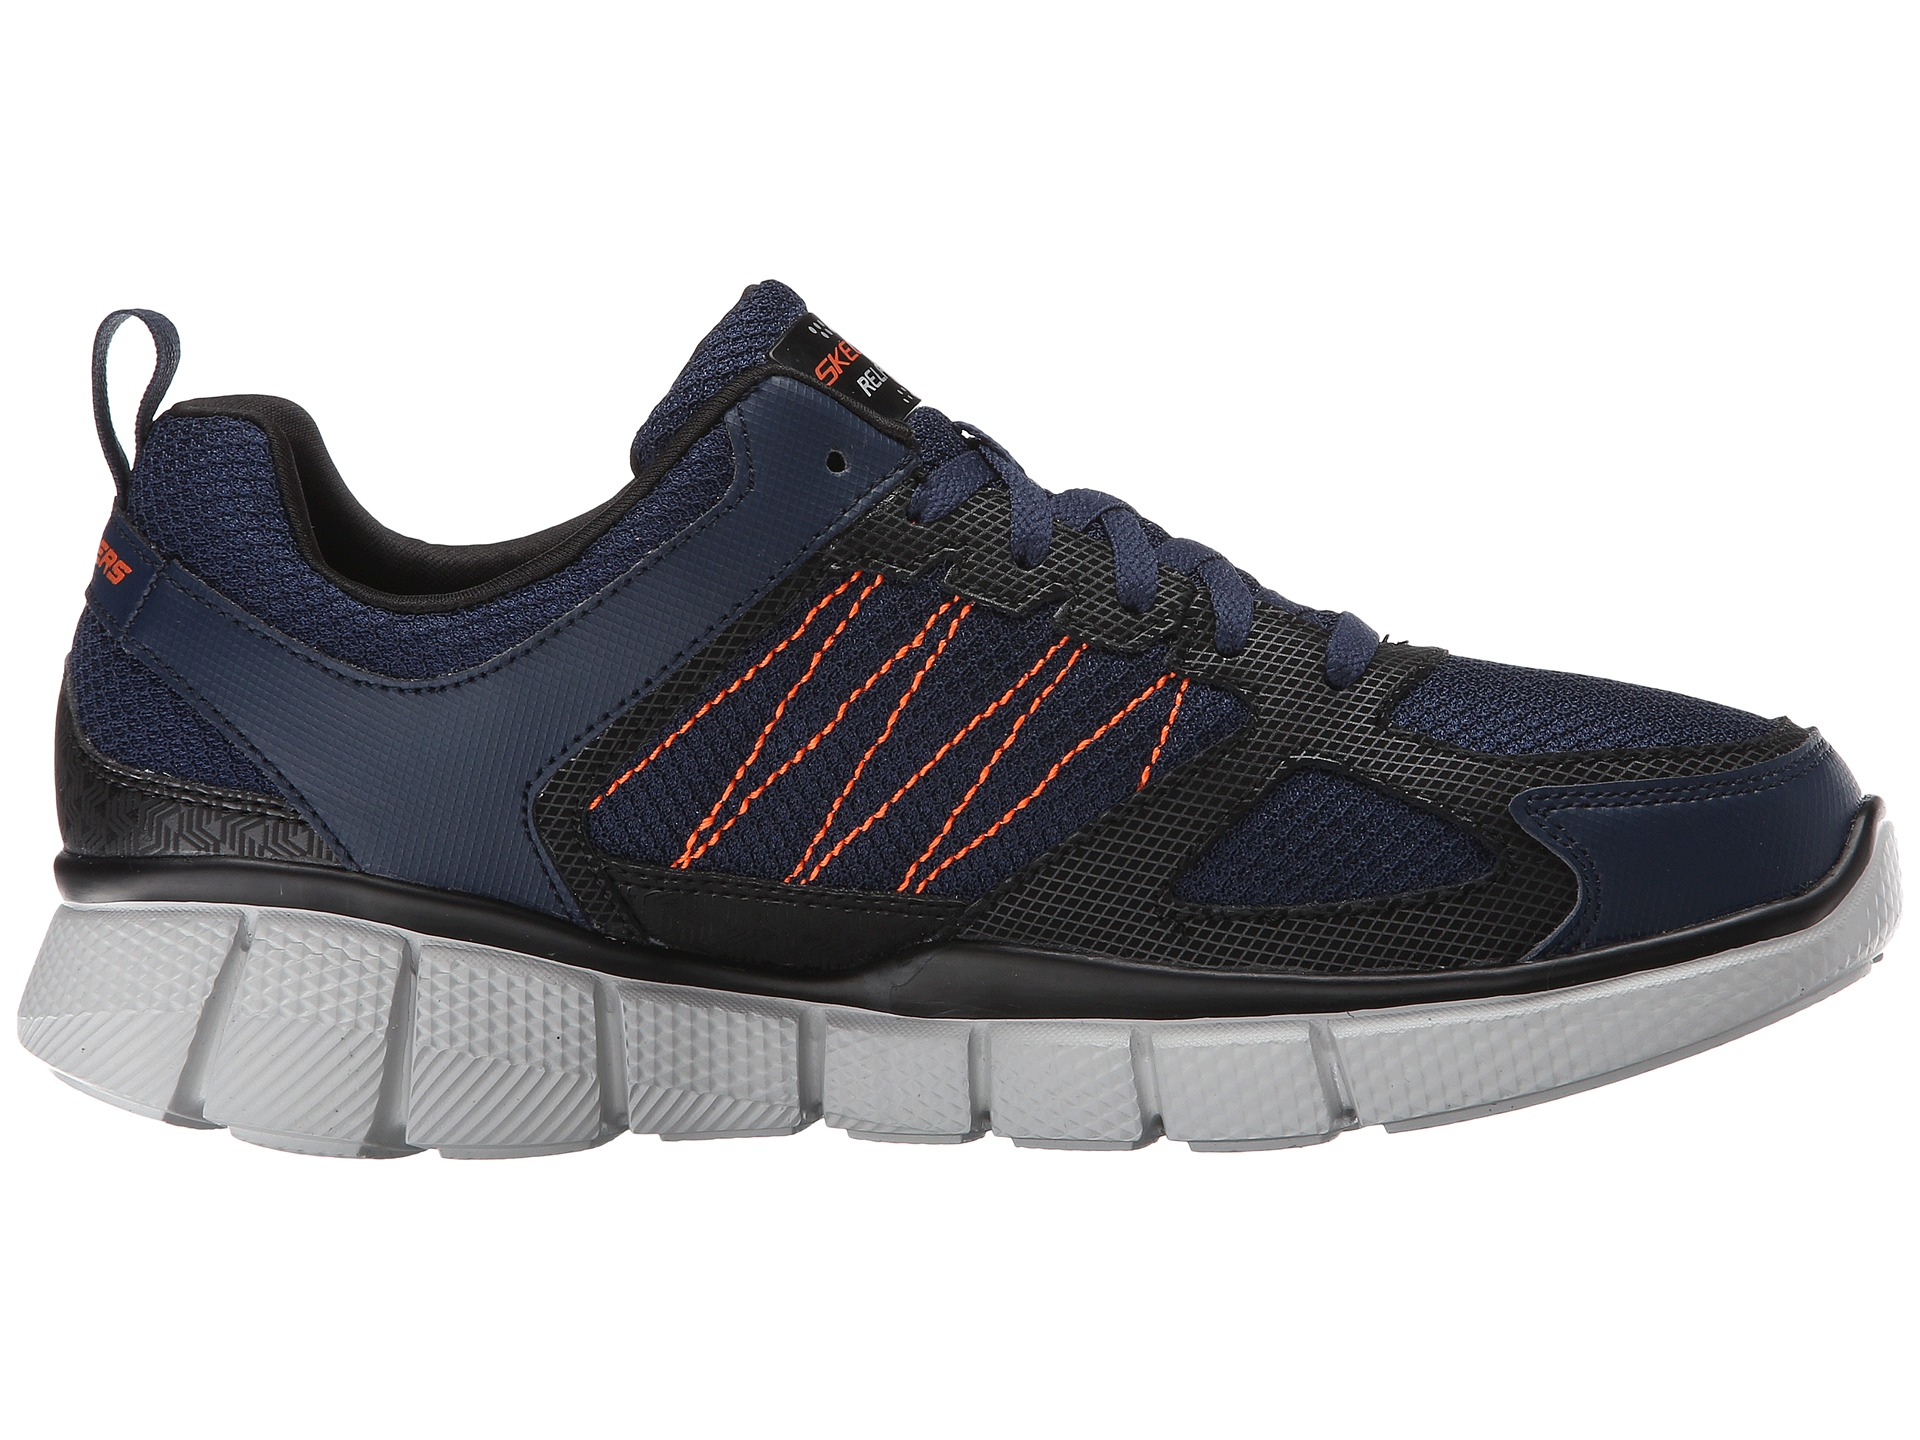 SKECHERS Equalizer 2.0 On Track - Zappos.com Free Shipping BOTH Ways